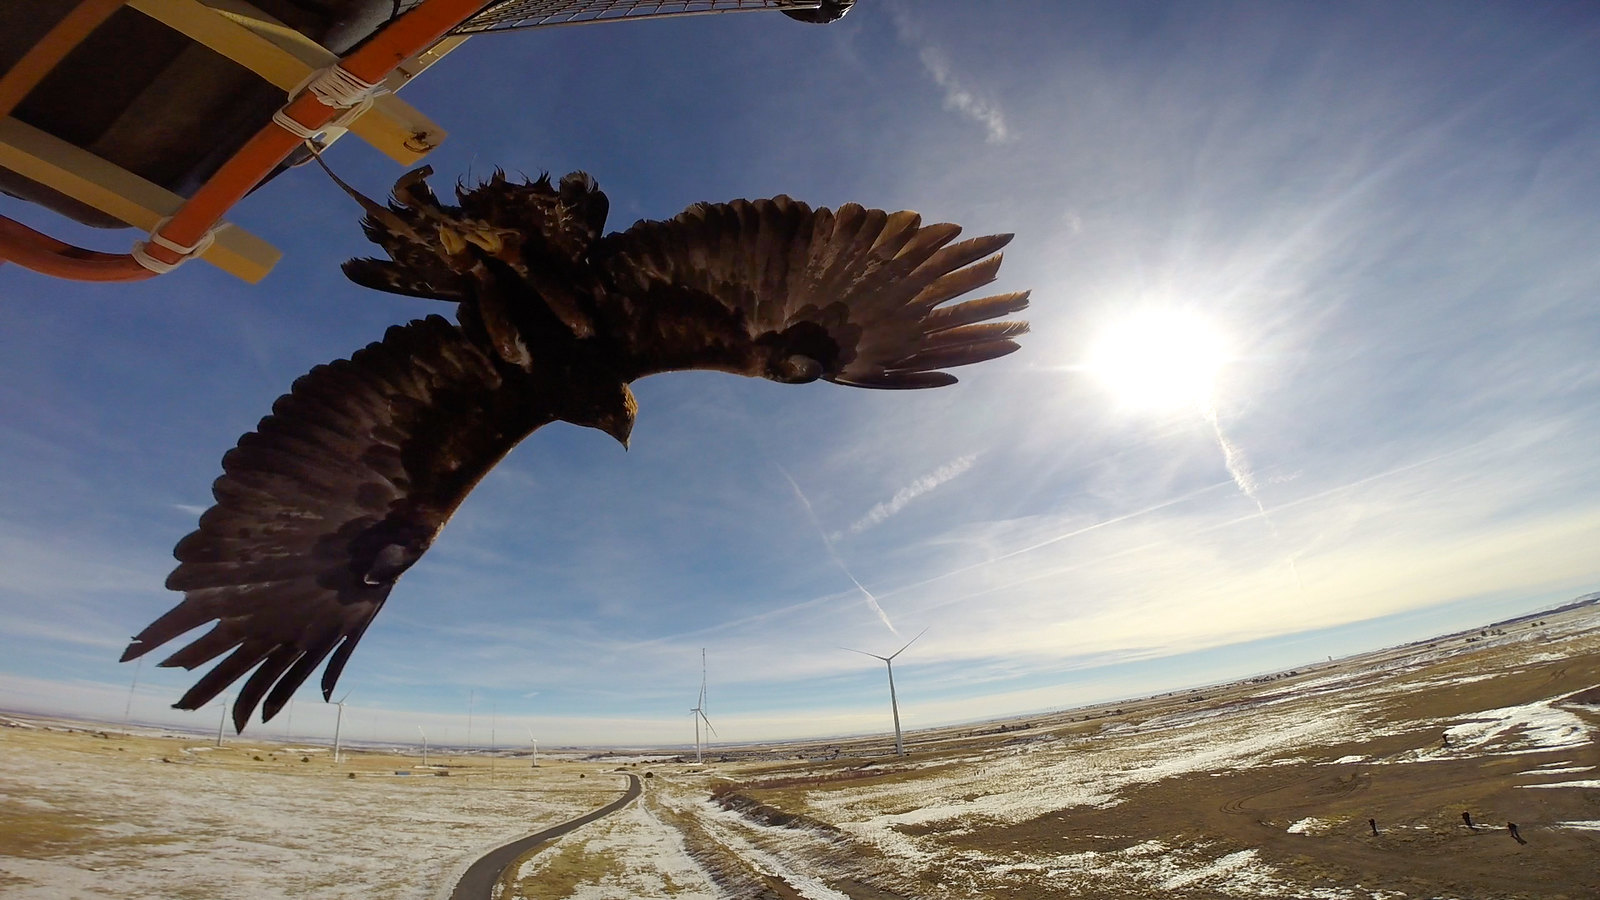 photo of eagle and wind farm